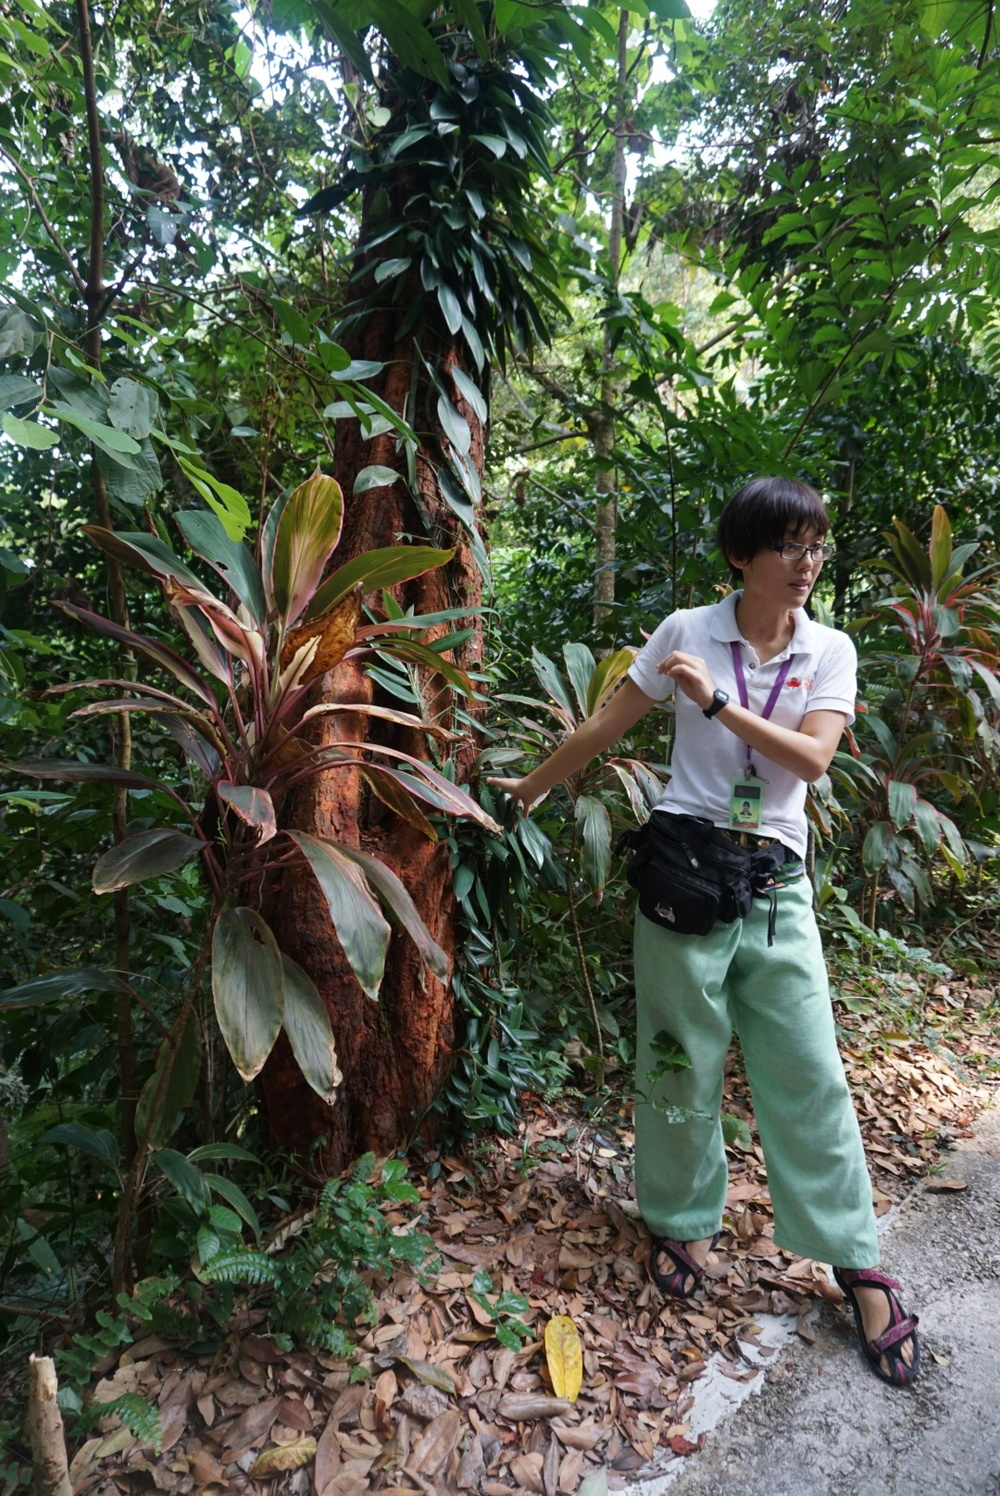 Our knowledgeable guide, Jo Leen